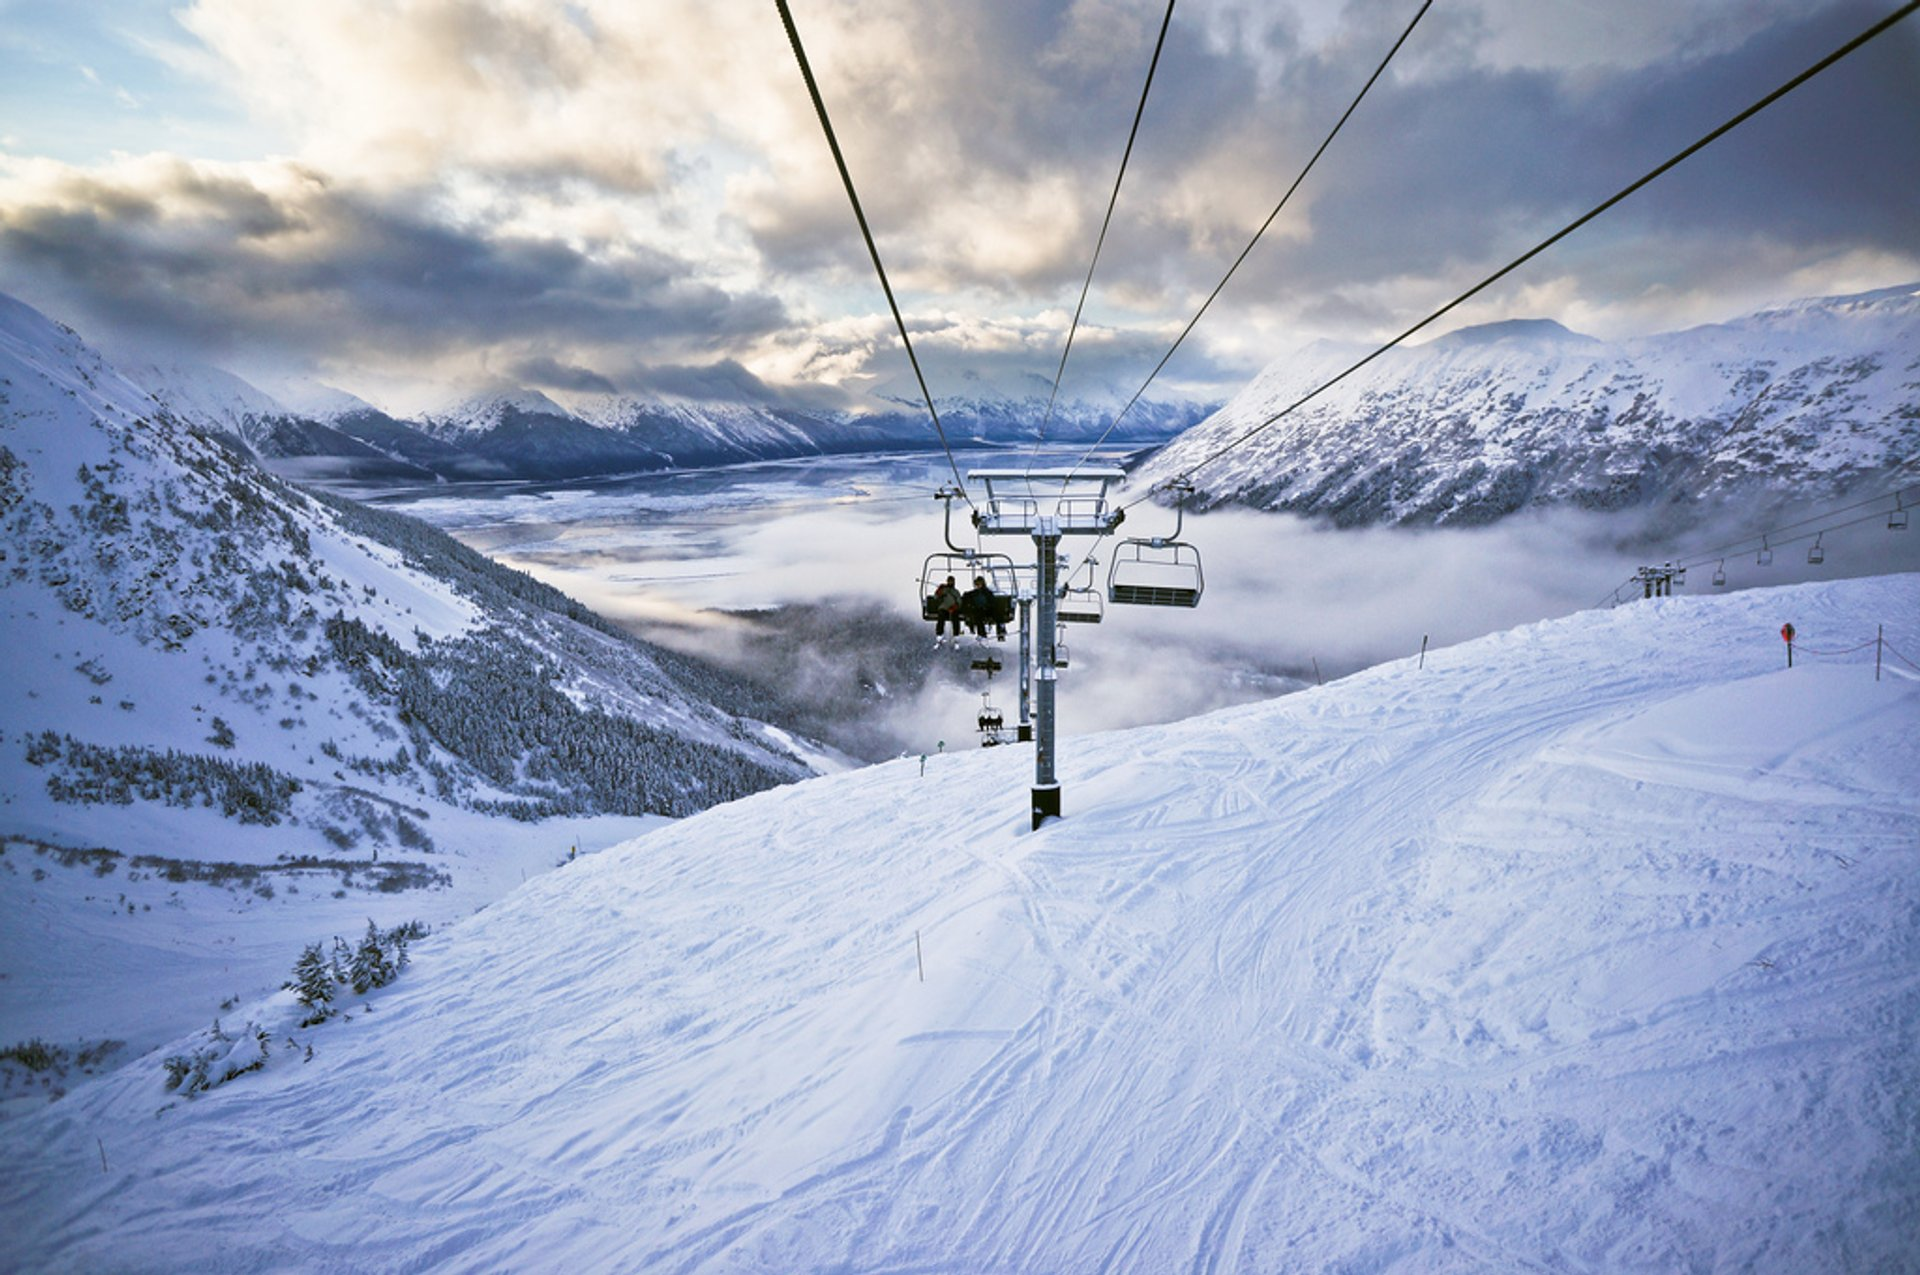 Chairlift at Alyeska Resort 2020